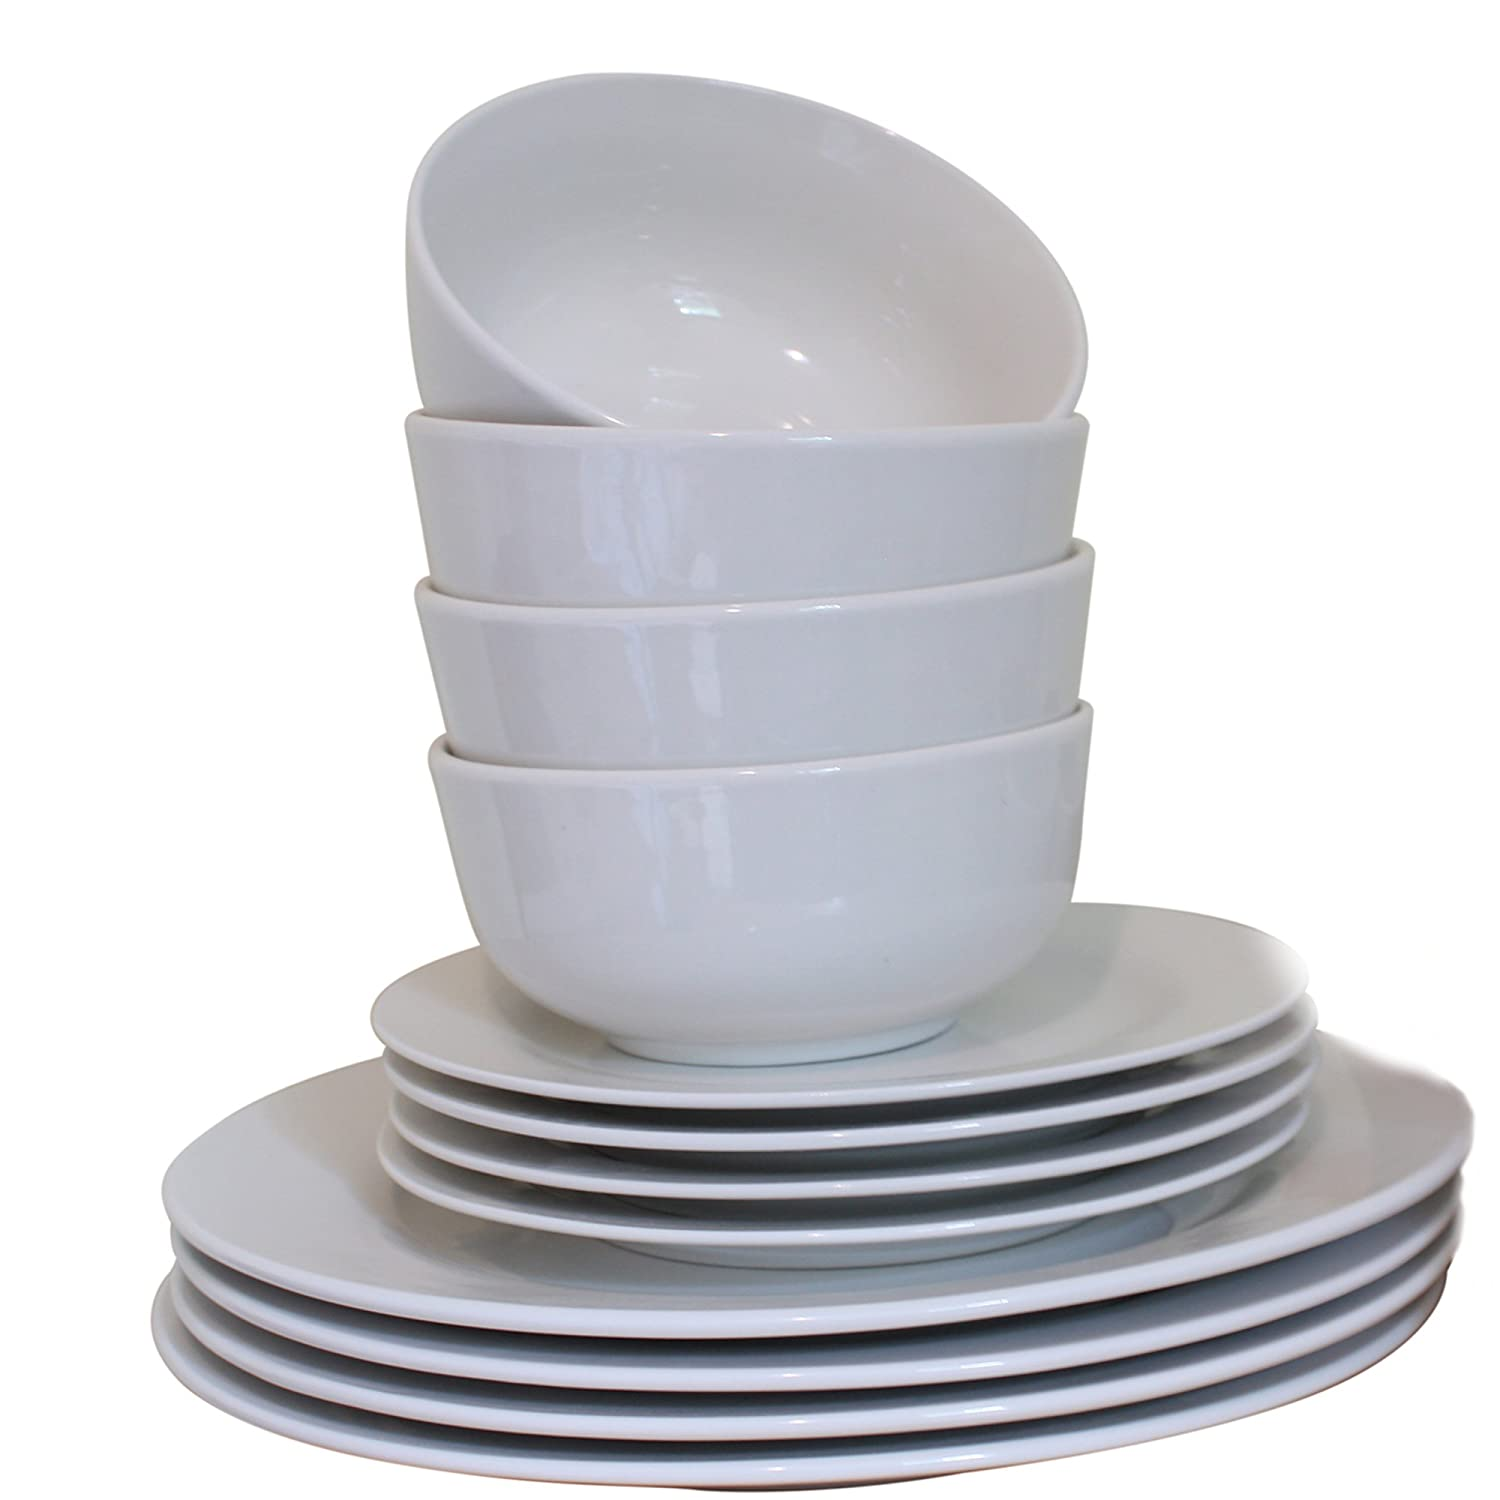 sc 1 st  Amazon UK & 36 Piece Basic Dinner Set in White: Amazon.co.uk: Kitchen \u0026 Home